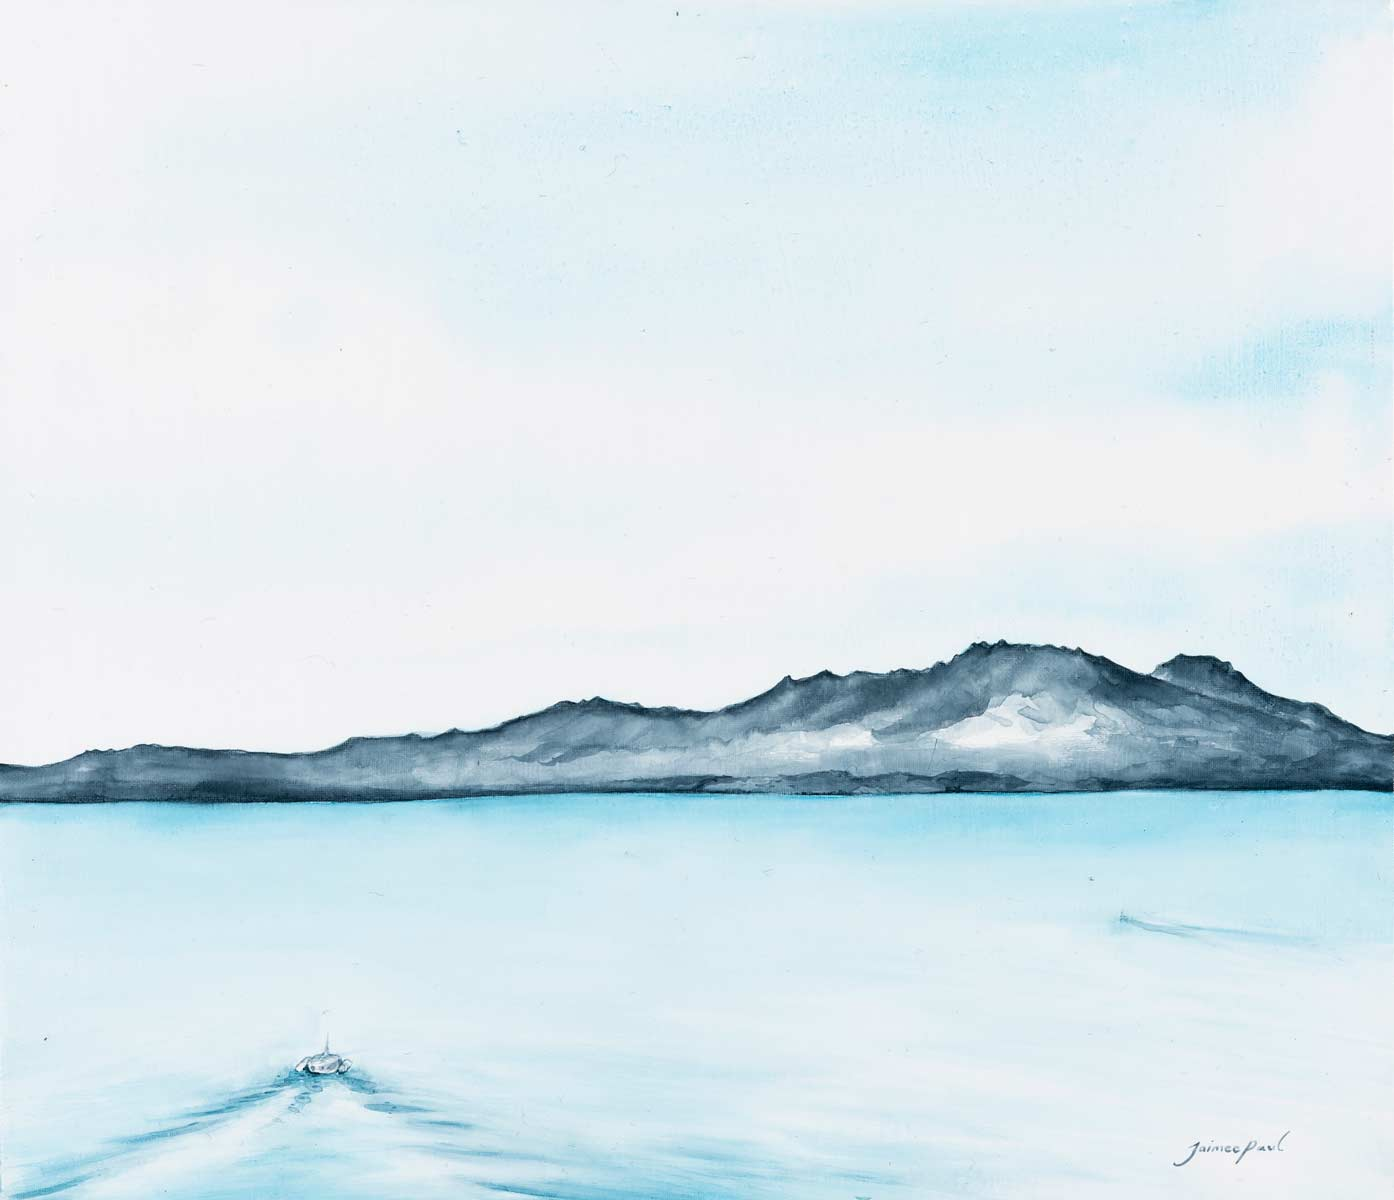 Jaimee-Paul_Paradise-Is-Already-Here_43.5x38.5_Watercolour-on-canvas_780_LowRes.jpg